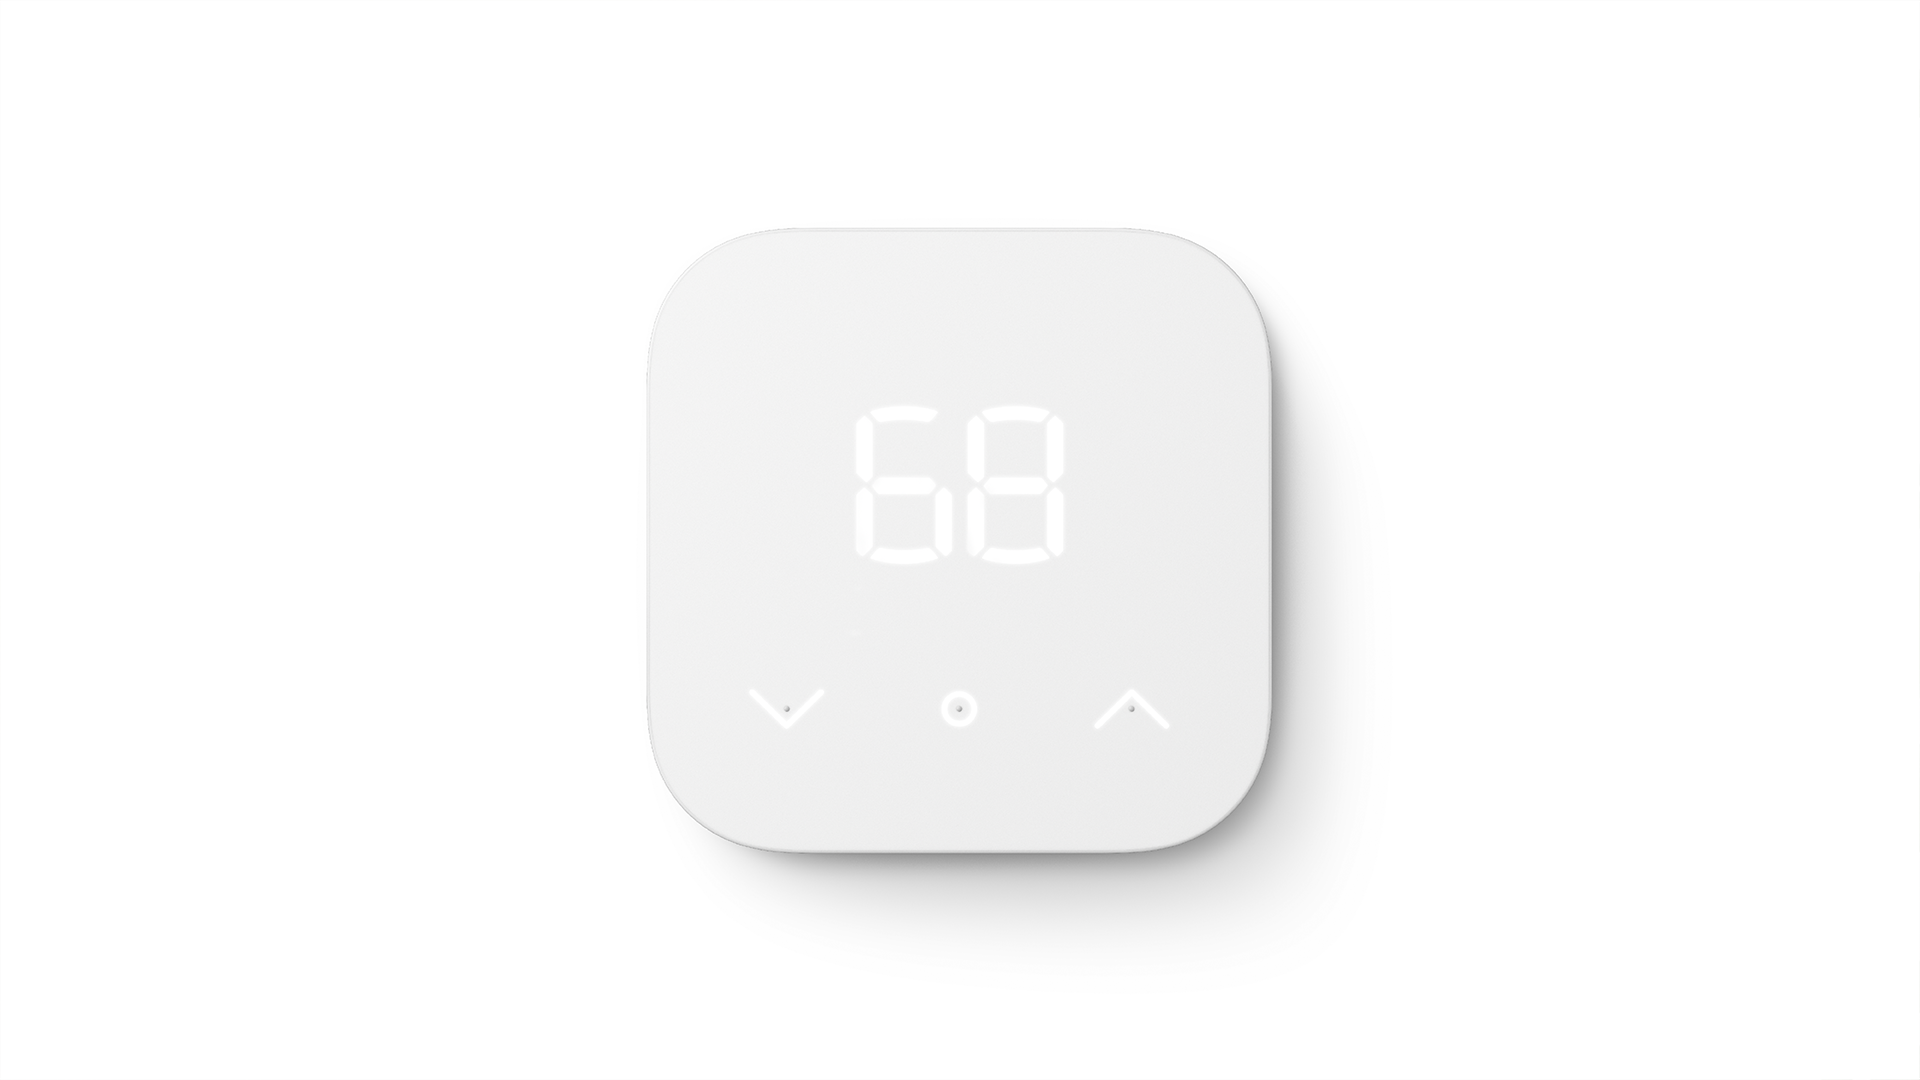 The Amazon Smart Thermostat on a white background.